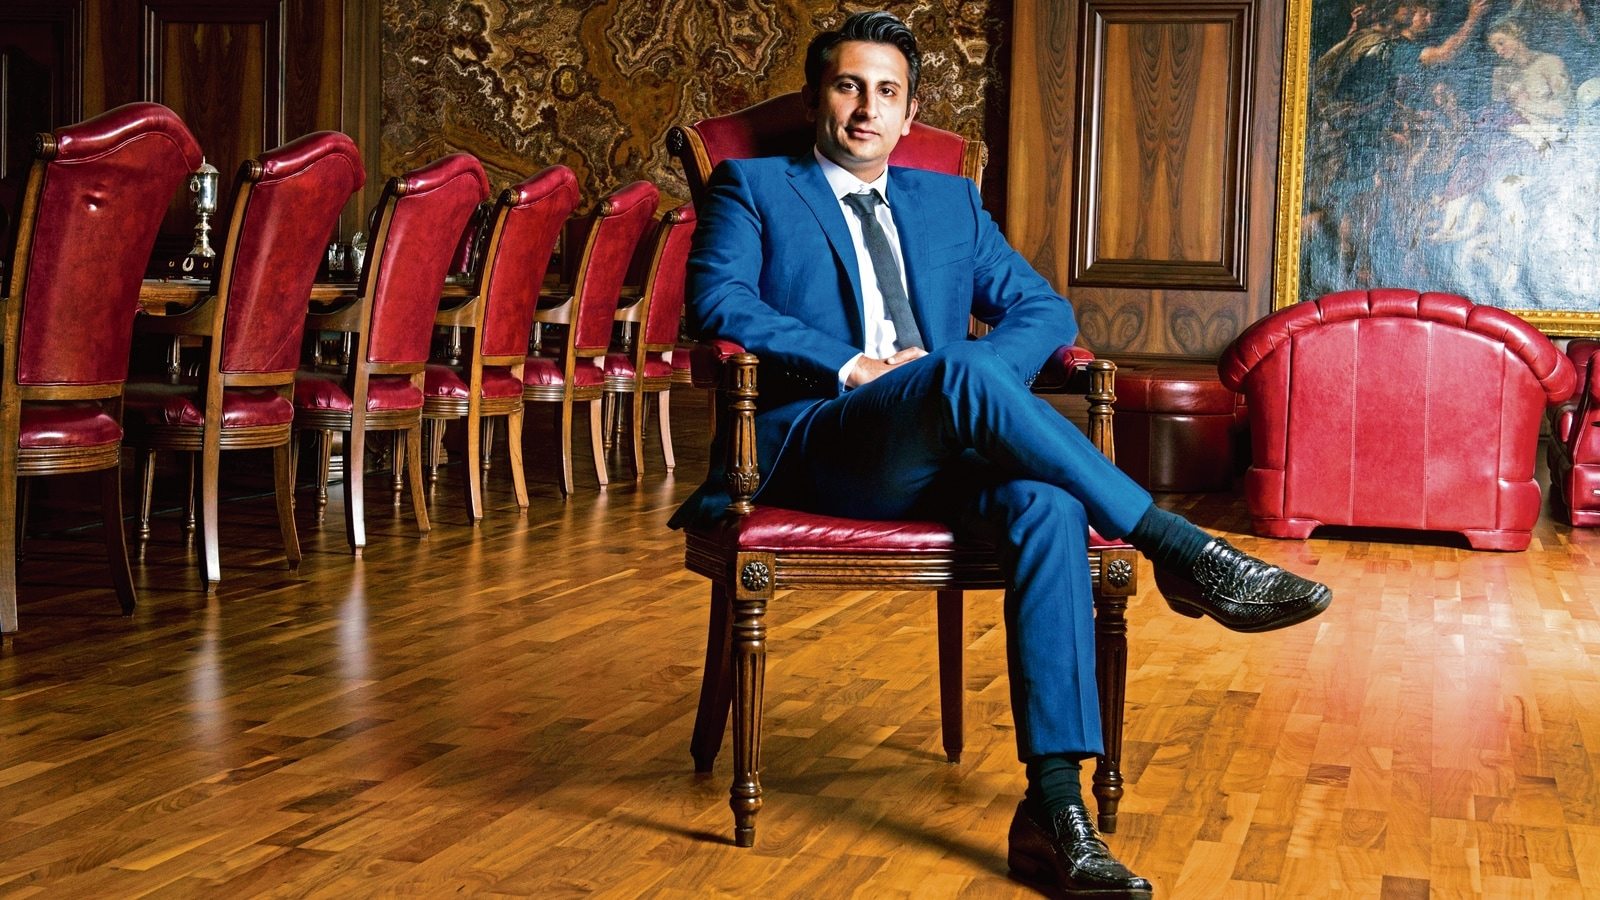 'If vaccine makers are threatened': Lawyer seeks Z security for Adar Poonawalla